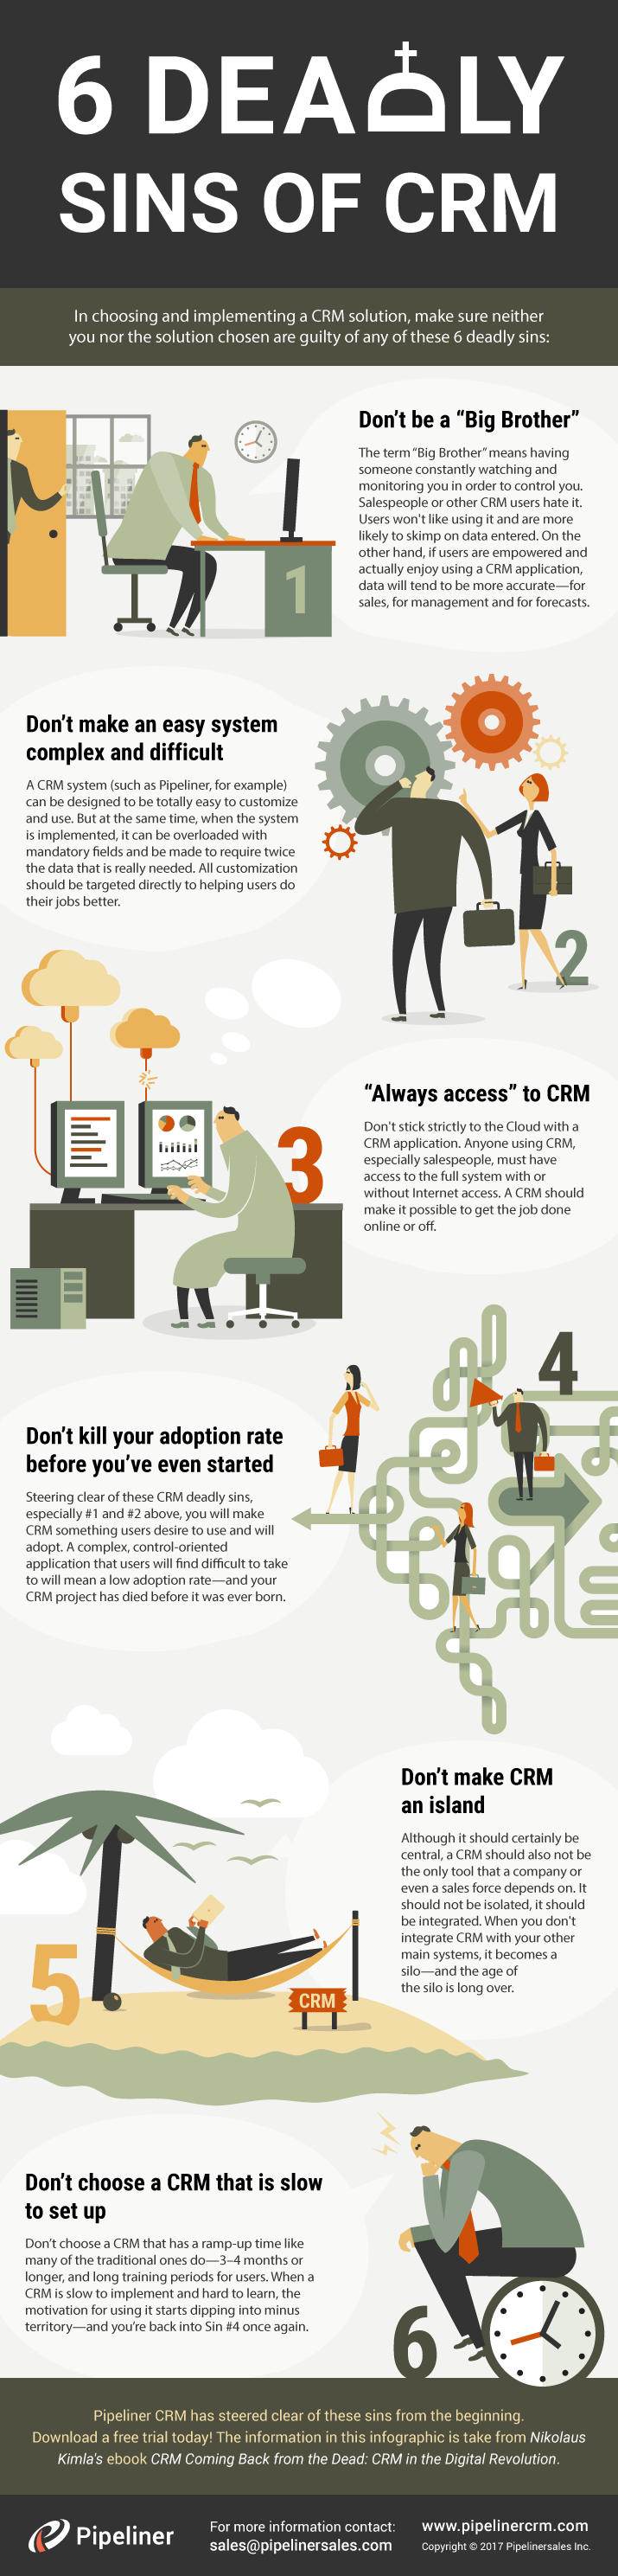 Pipeliner CRM Deadly Sins CRM - Infographic